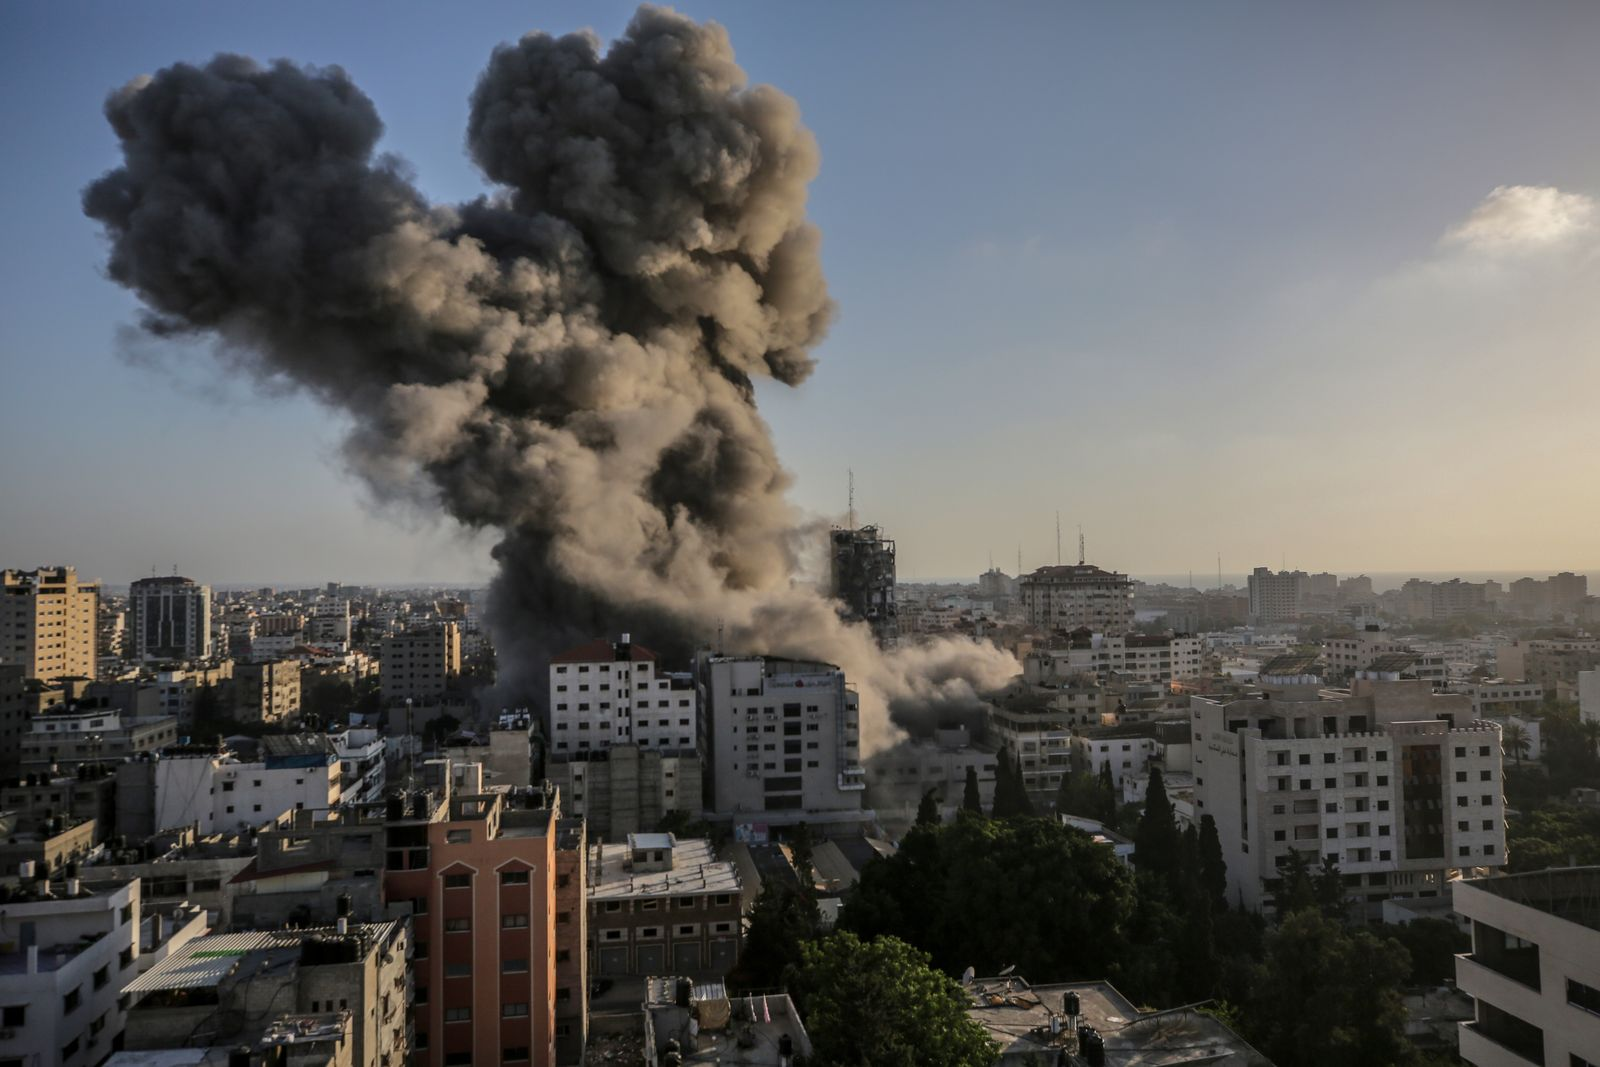 Smoke and flames rise after an Israeli strike Al-Shorouq tower in Gaza City